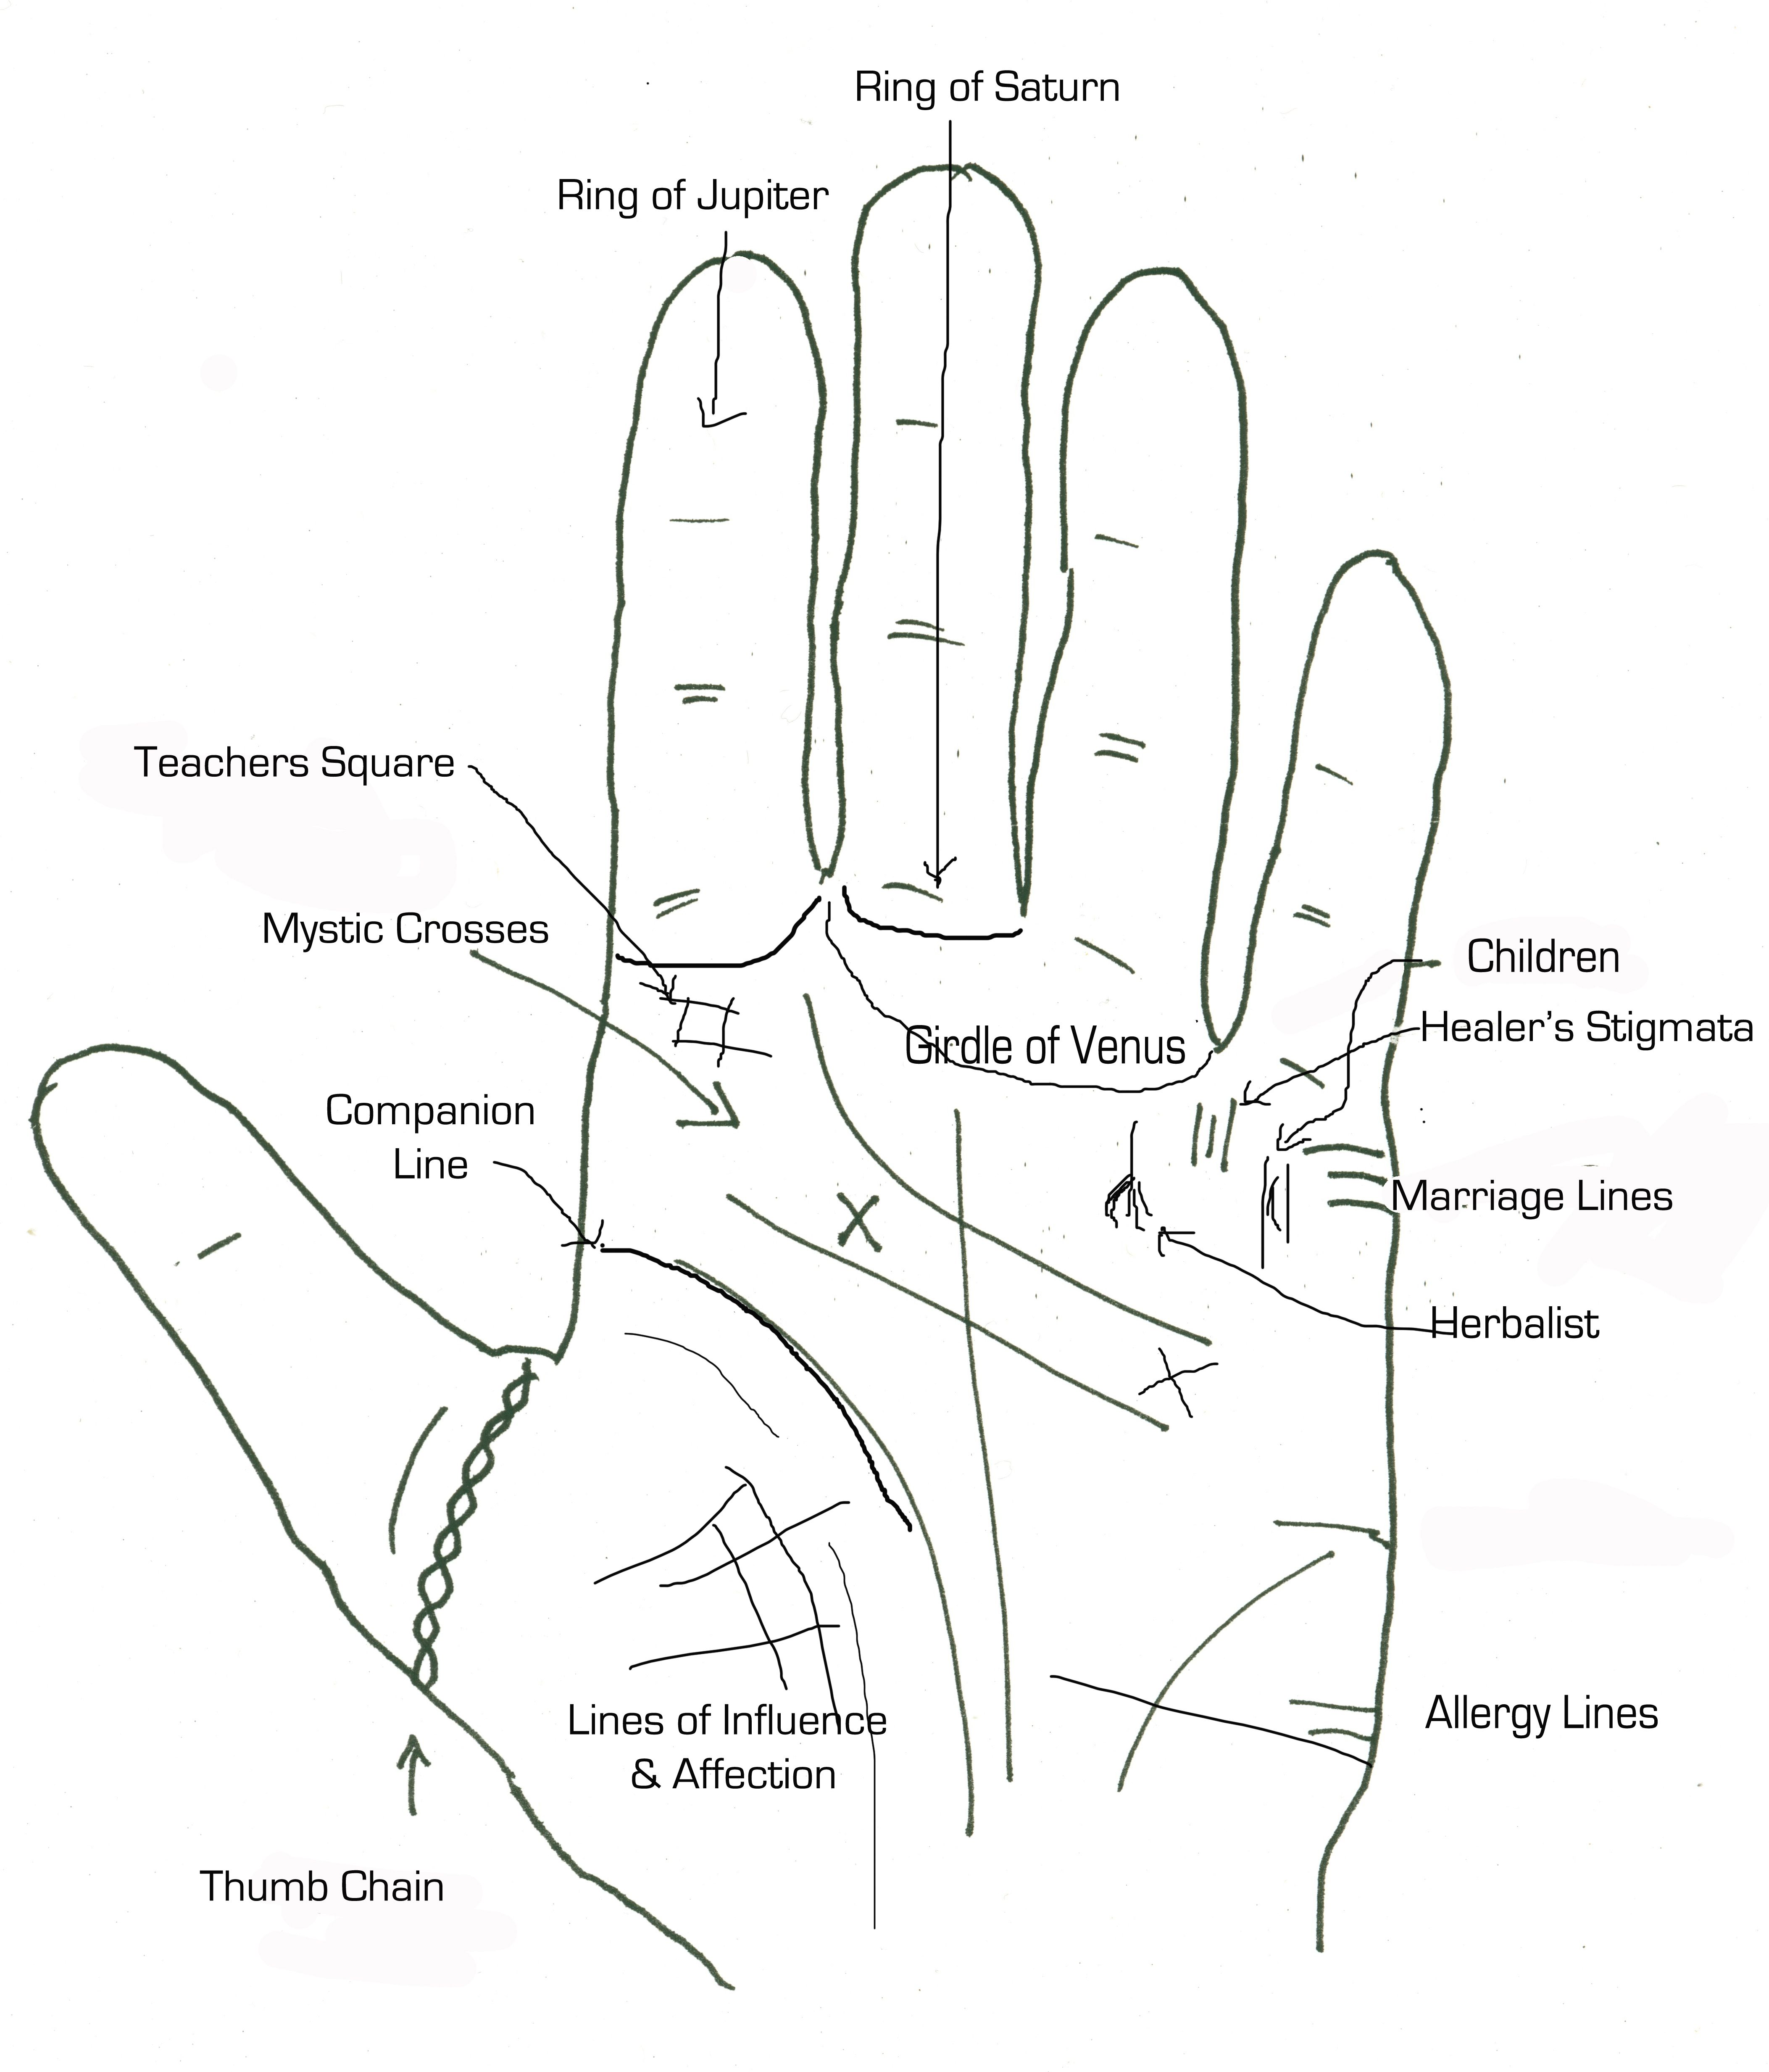 Palmistry: the lines of wealth and other signs on the palm, indicating financial solvency